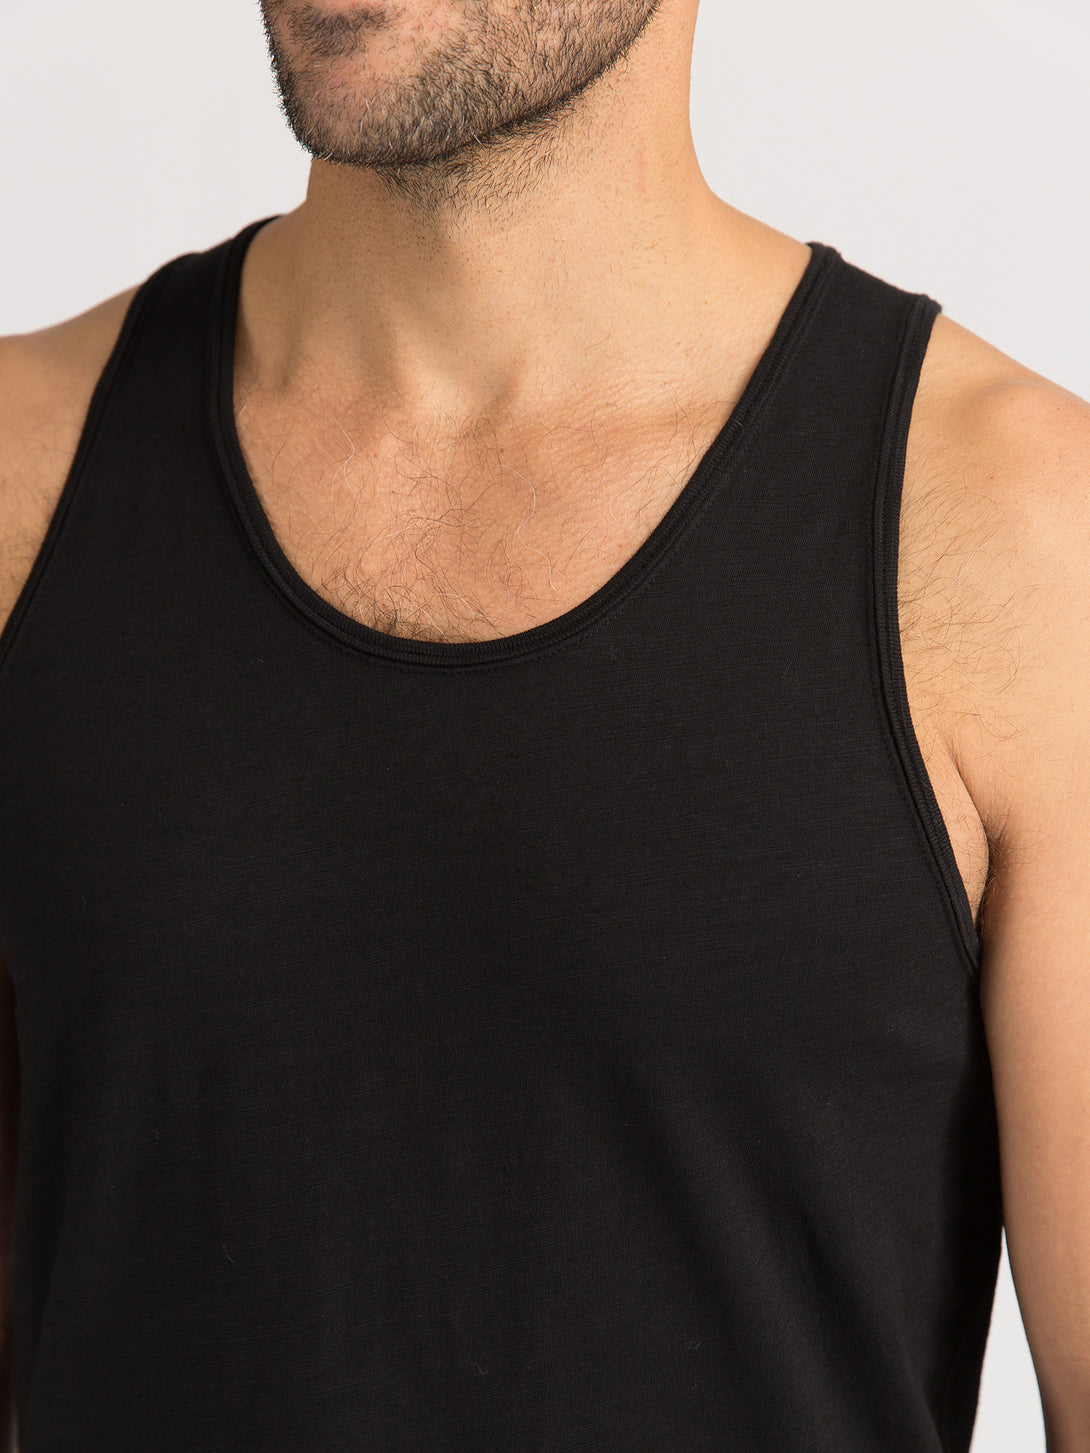 ons men's garage tank tee JET BLACK